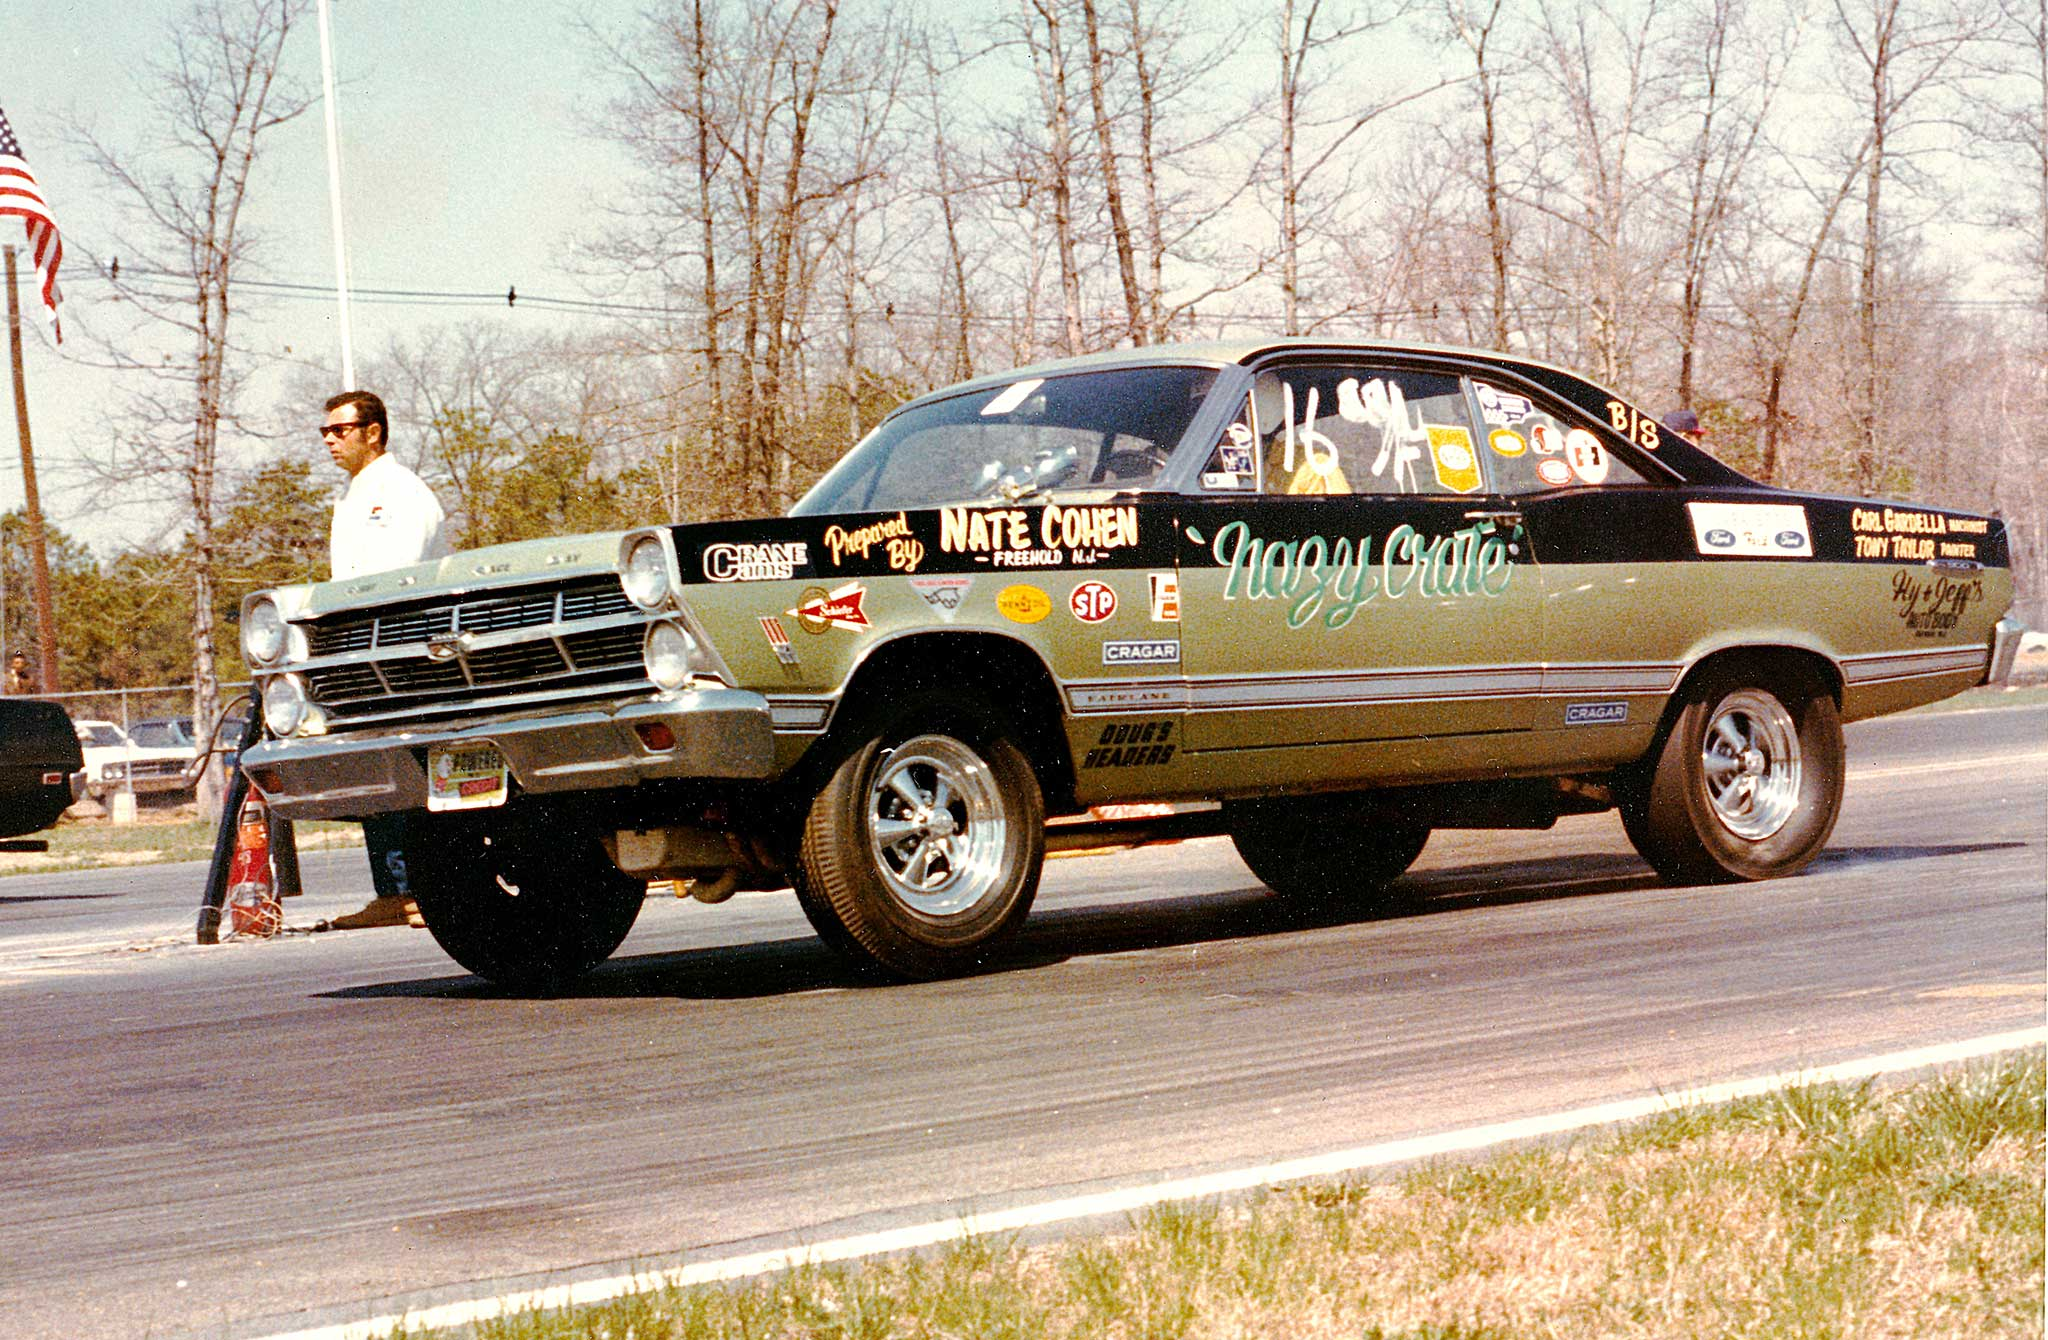 Nate Cohen, from Freehold, New Jersey, ran this 427 1967 Fairlane in Super Stock, capturing SS/F class at the 1968 NHRA Springnationals in Englishtown. Cohen was a regular at Eastern and Midwestern national events during the golden years.